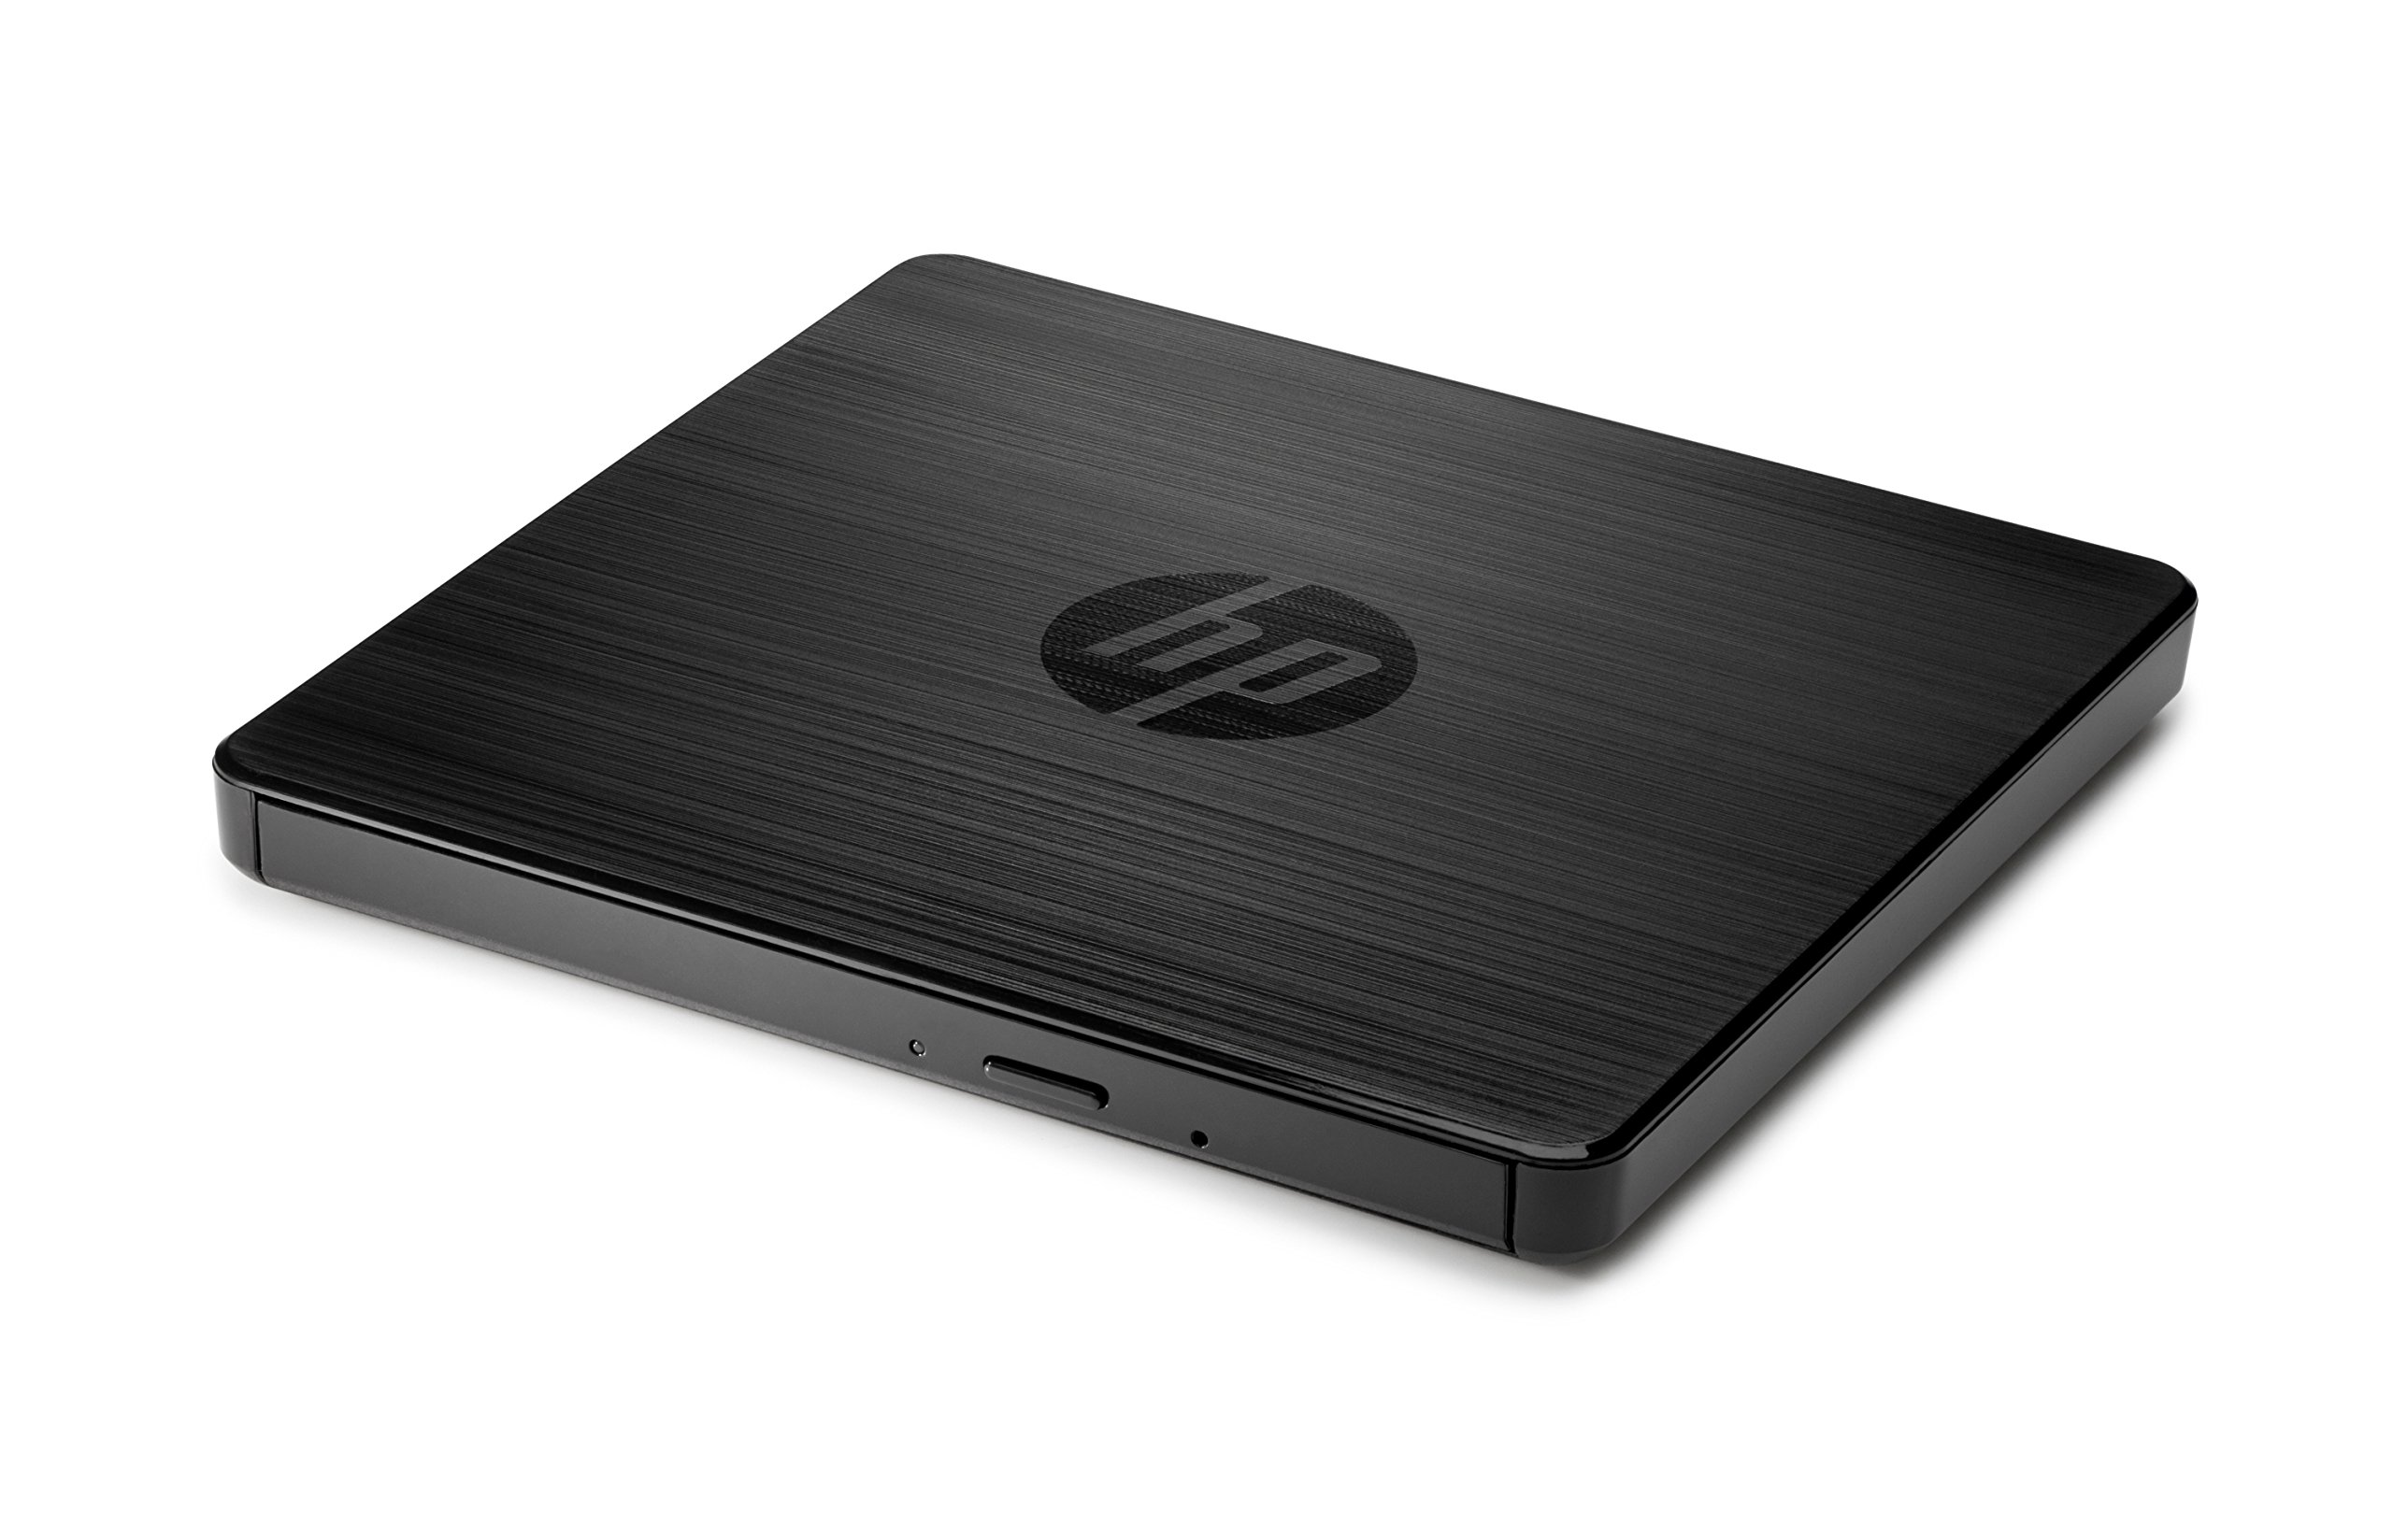 HP F2B56AA USB DVD-RW External Drive , Black